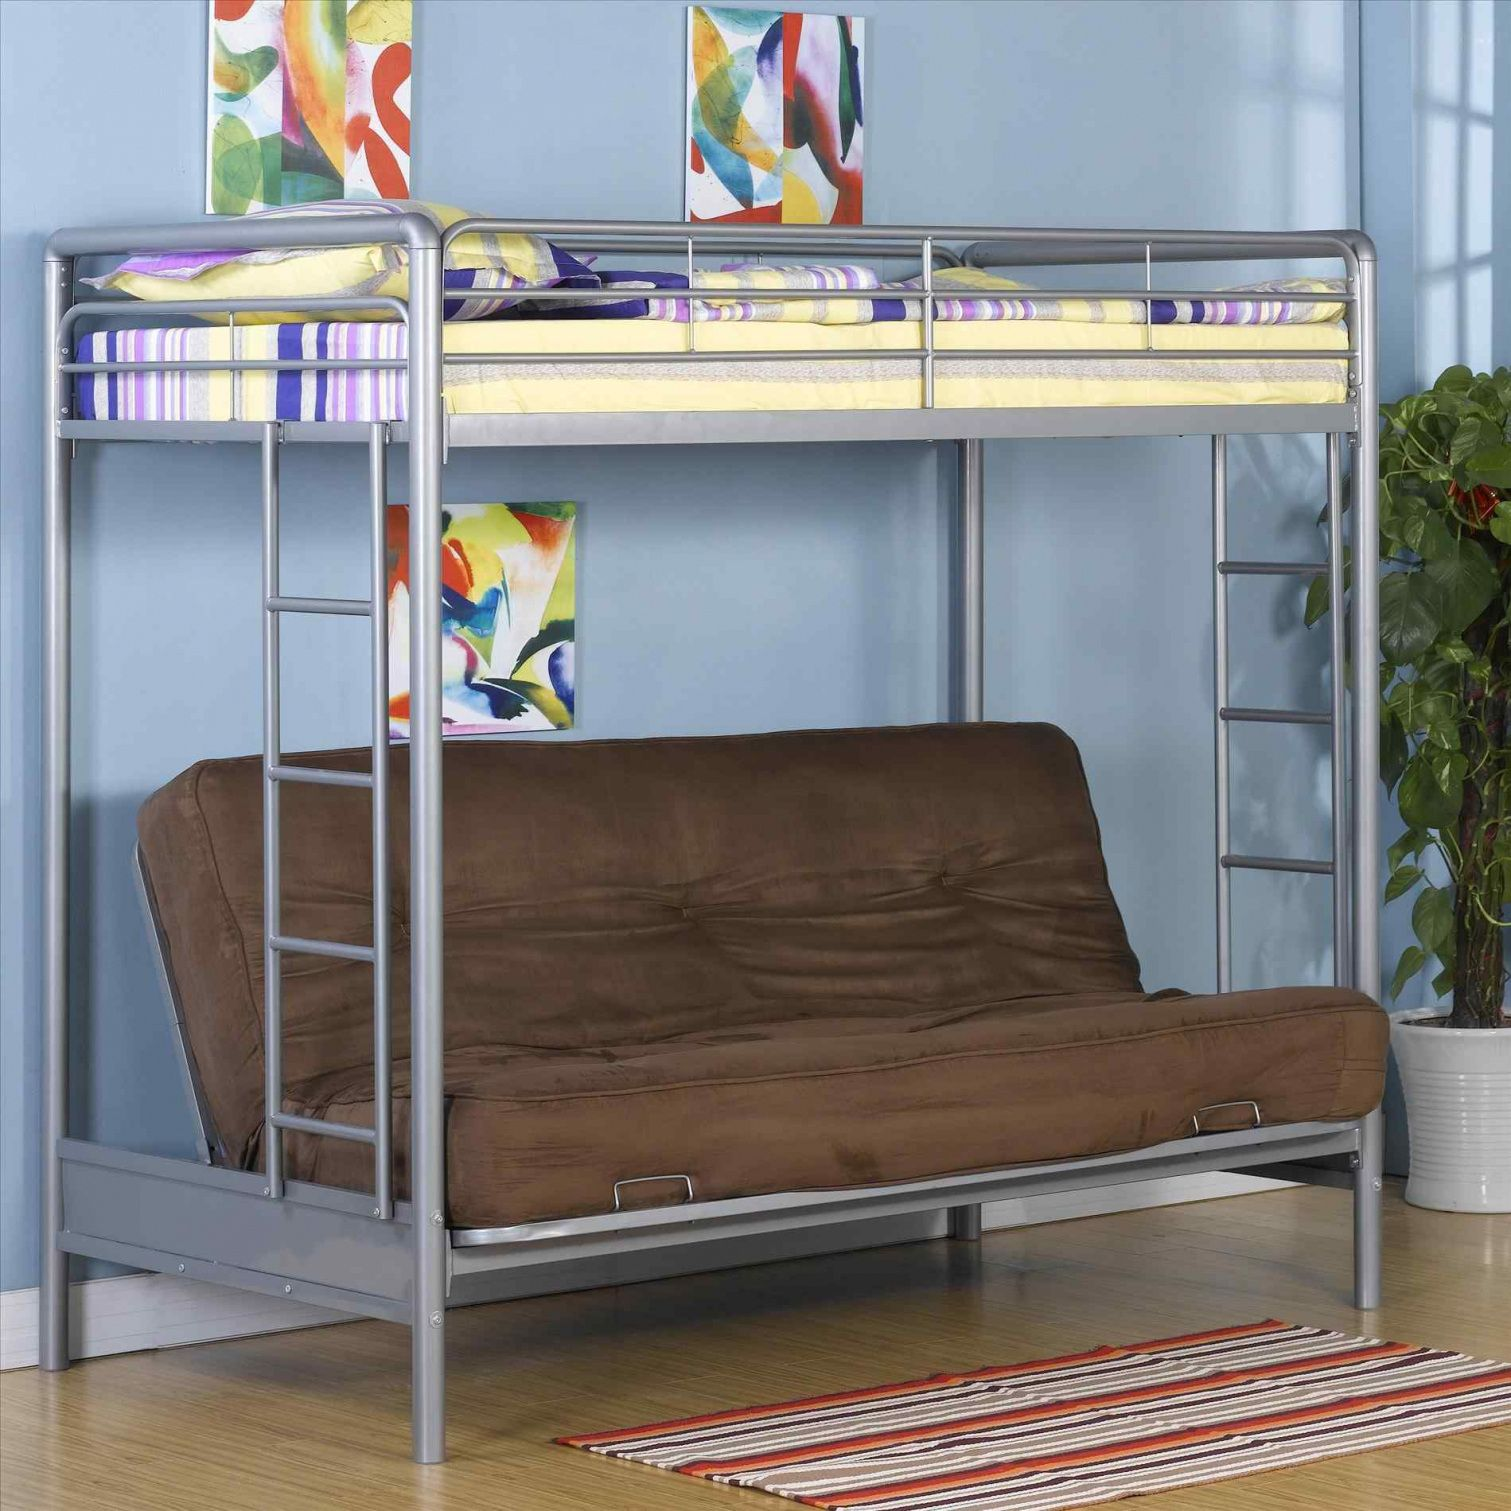 Pin By Neby On Bedroom Apartments Ideas Pinterest Bunk Beds